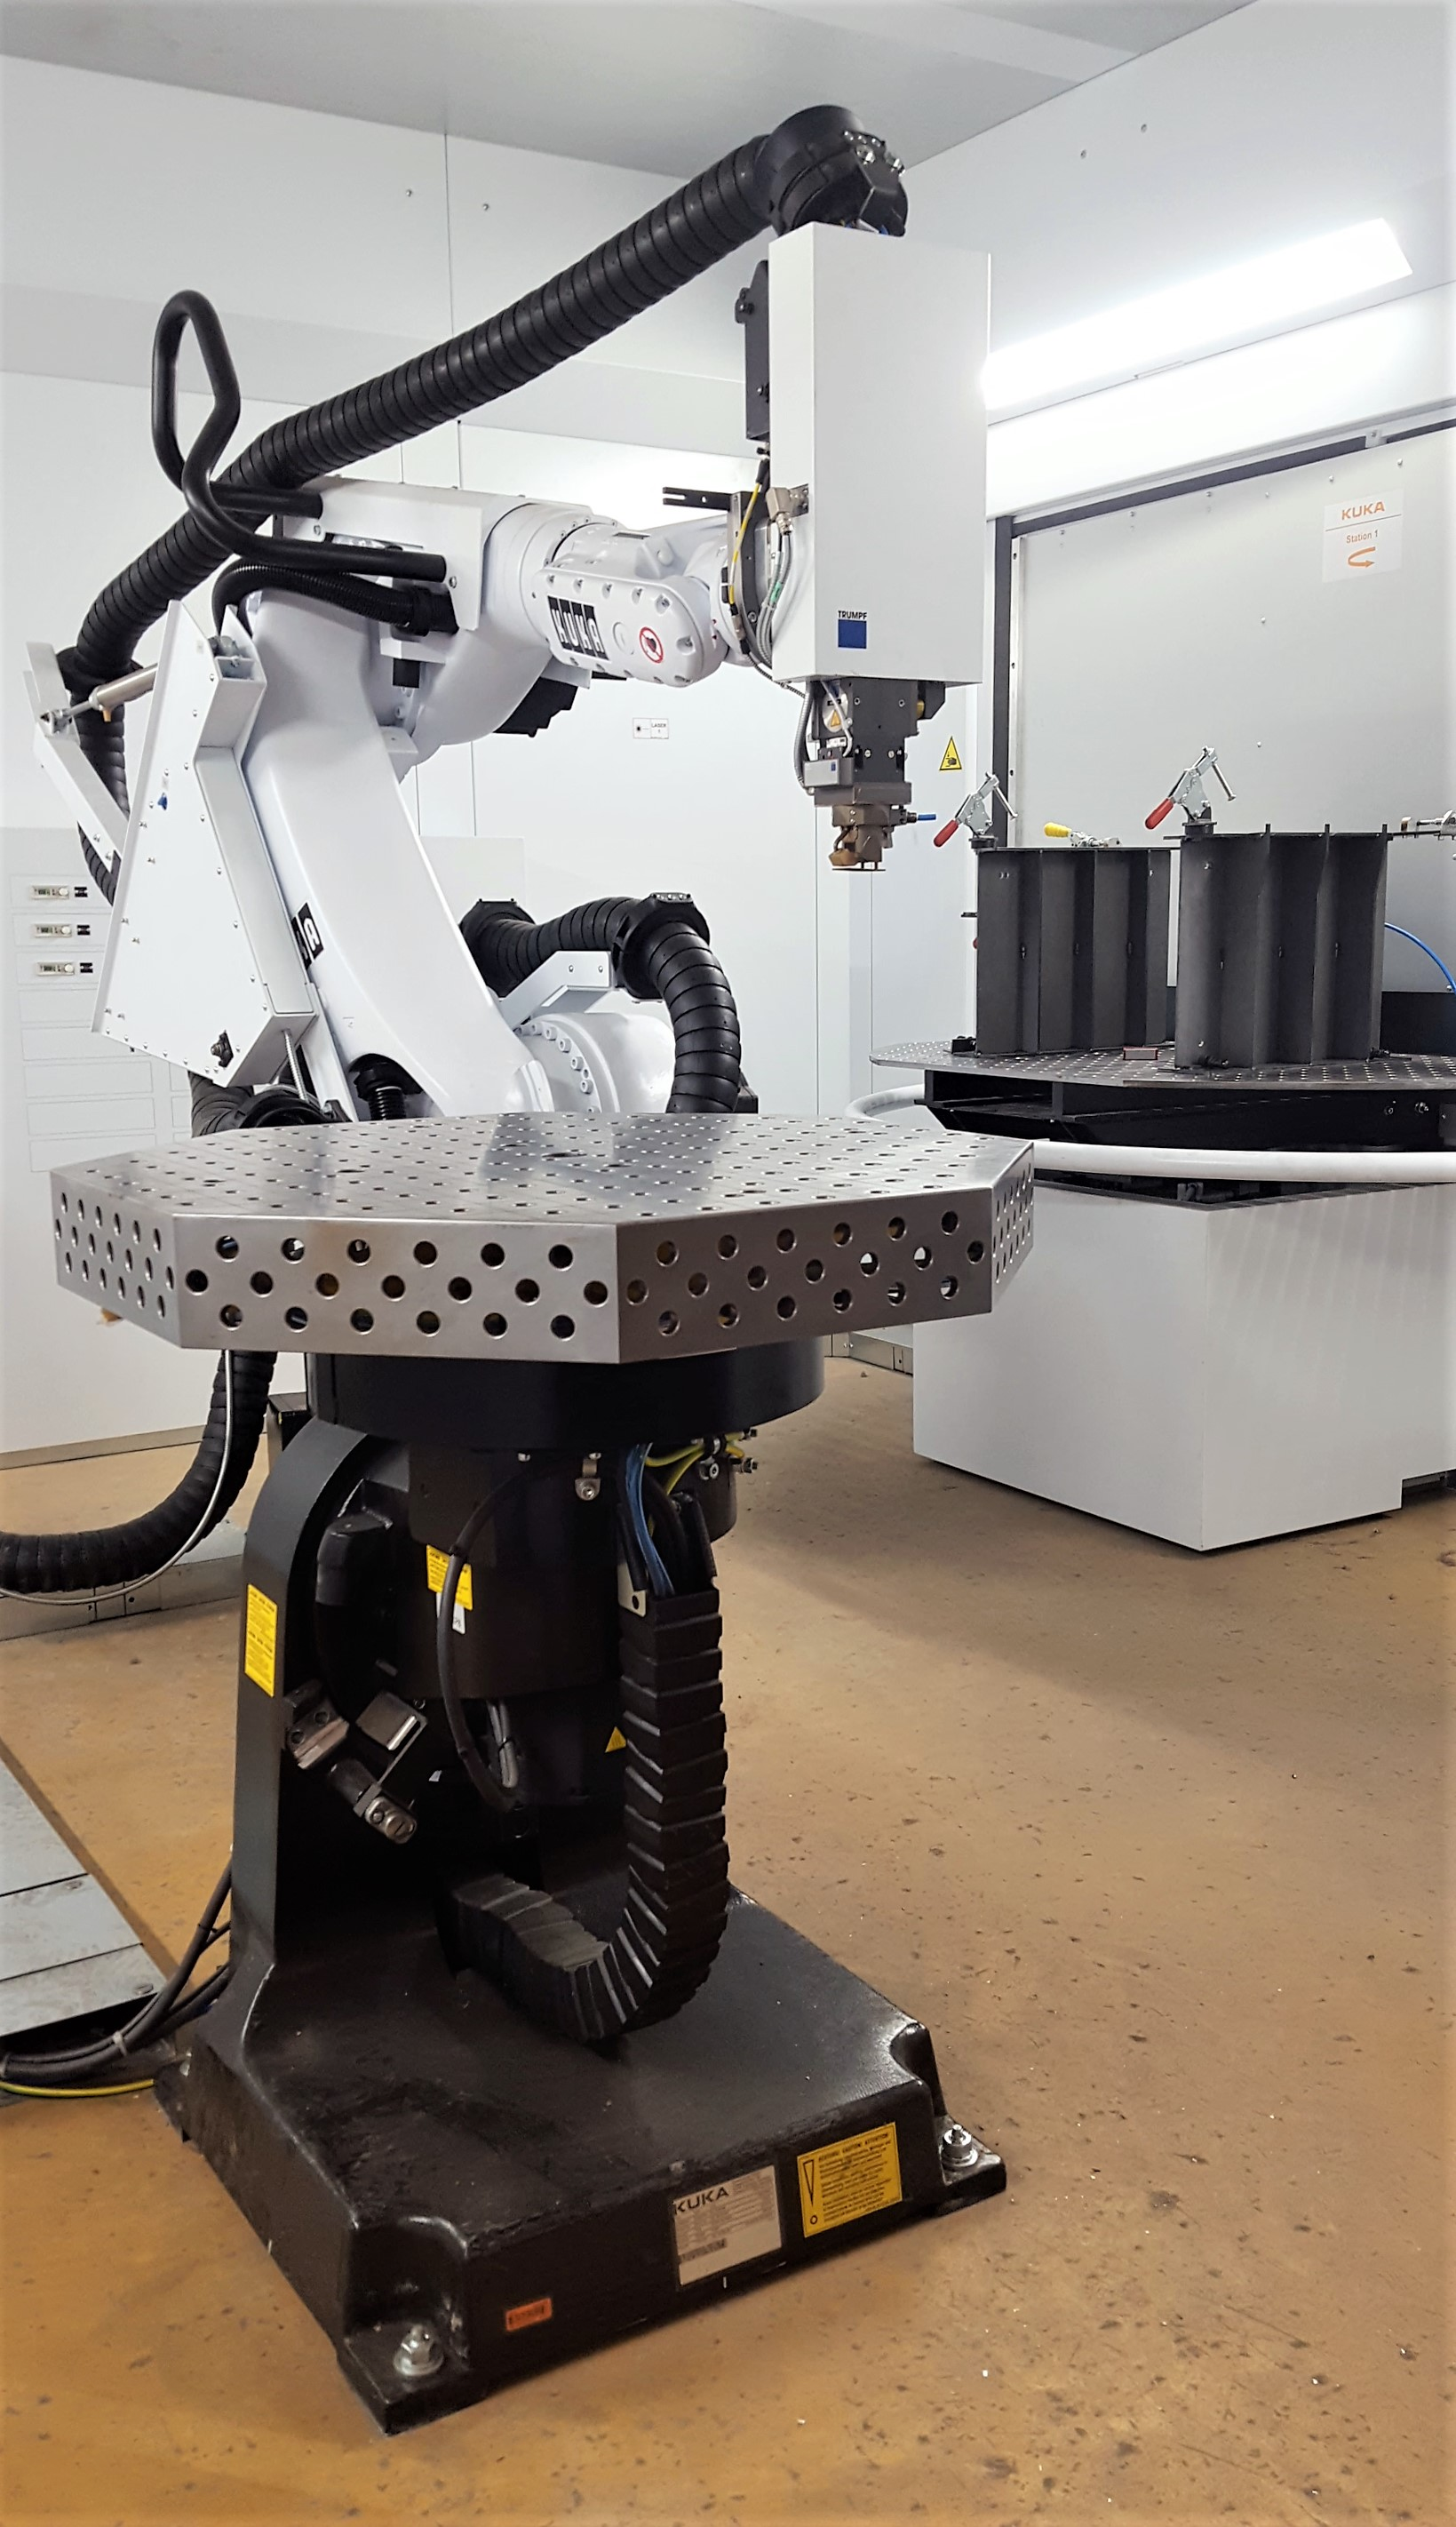 Latest technology for laser welding of stainless steel, steel and aluminum. The manufacturing of components is now even more precise and more efficient: increasing quality and efficiency.